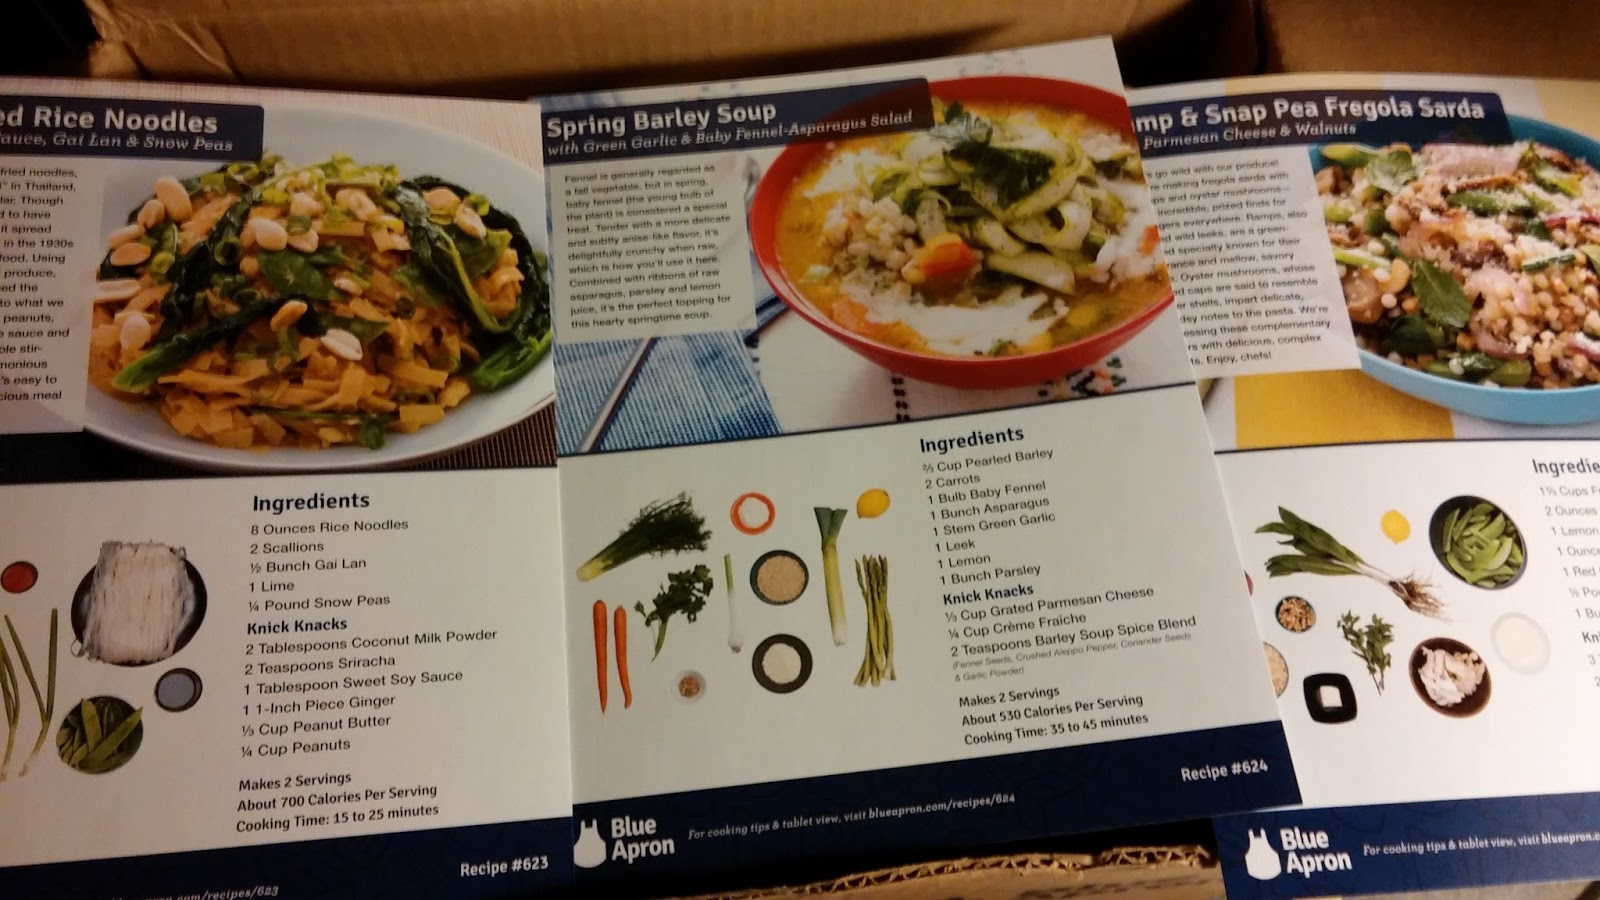 Blue apron olive oil - They Give You Everything You Need To Make The Meal Except Olive Oil And 8x9 Recipe Cards With Step By Step Instructions On The Back Of The Cards